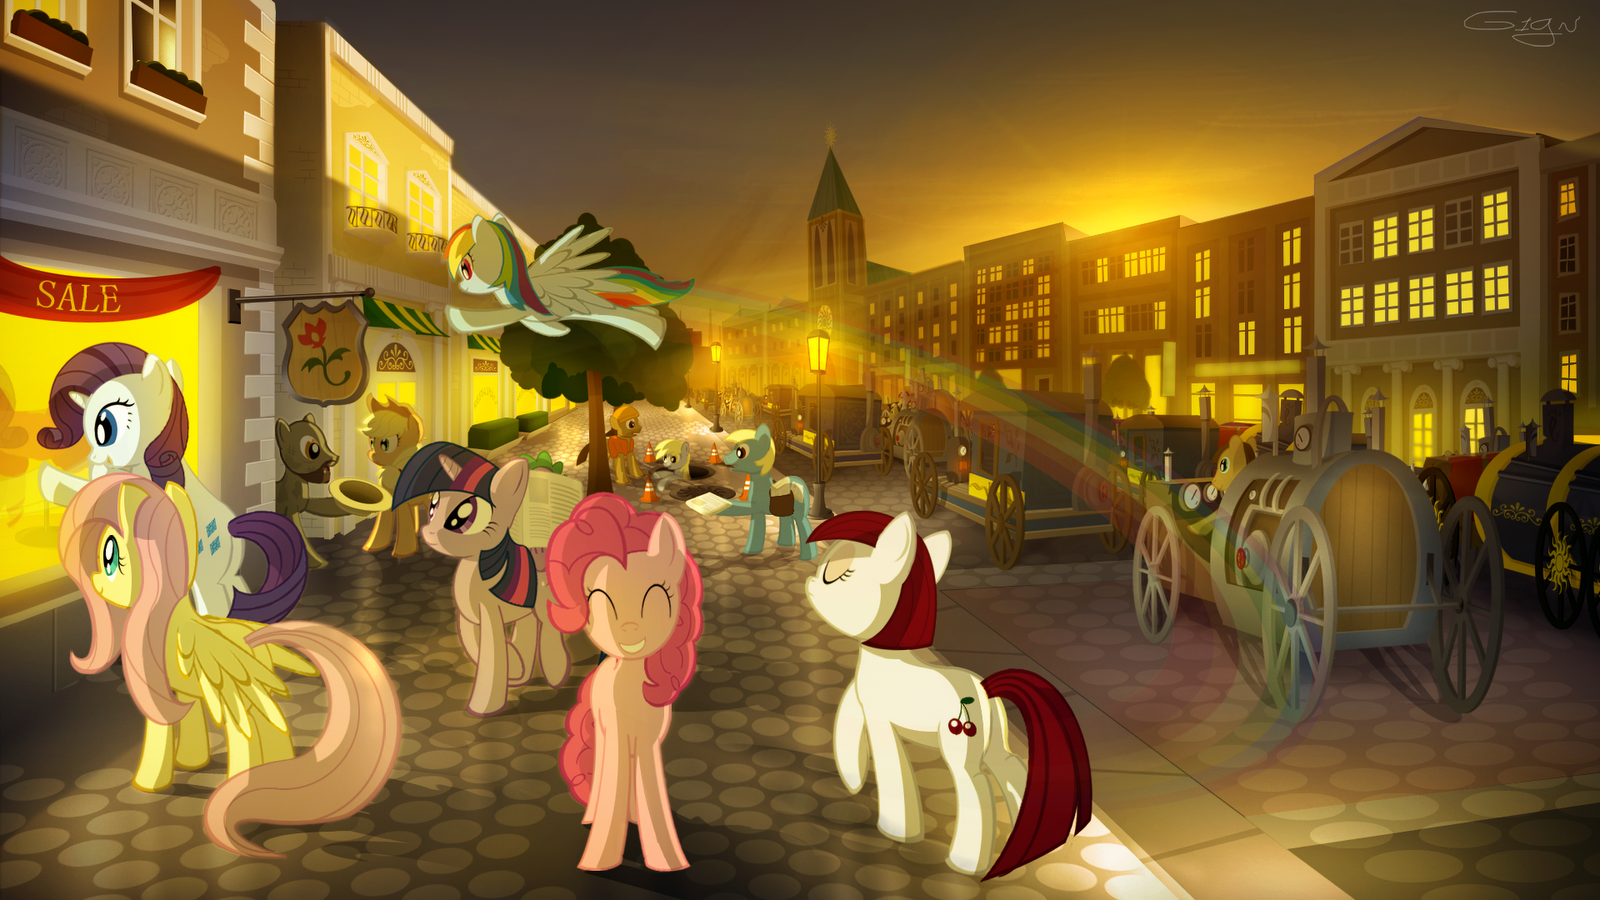 [Bild: My-Little-Pony-Friendship-is-Magic-image...00-900.png]